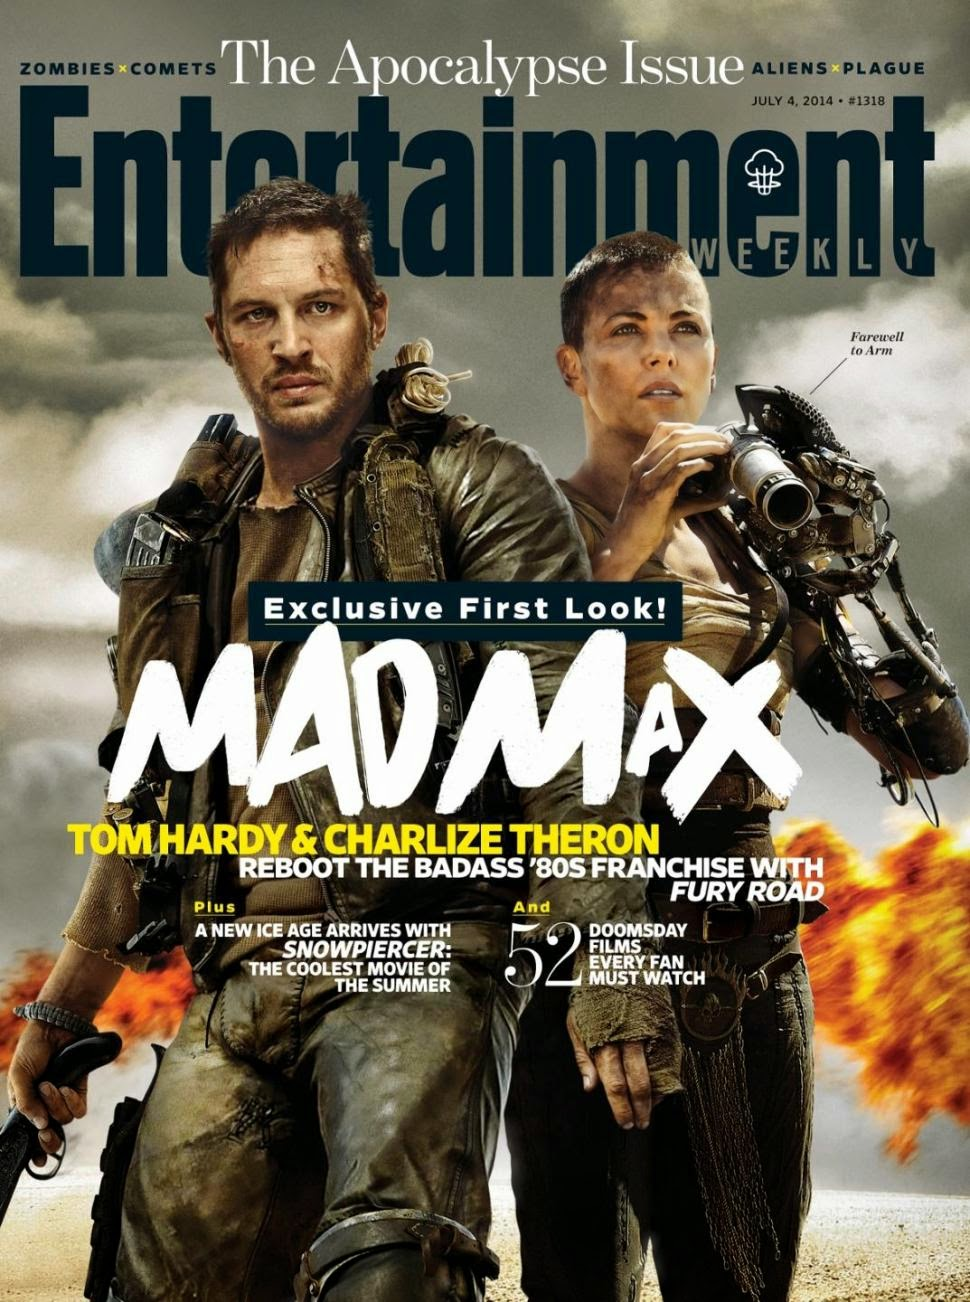 http://insidemovies.ew.com/2014/07/27/george-miller-mad-max-interview-comic-con/